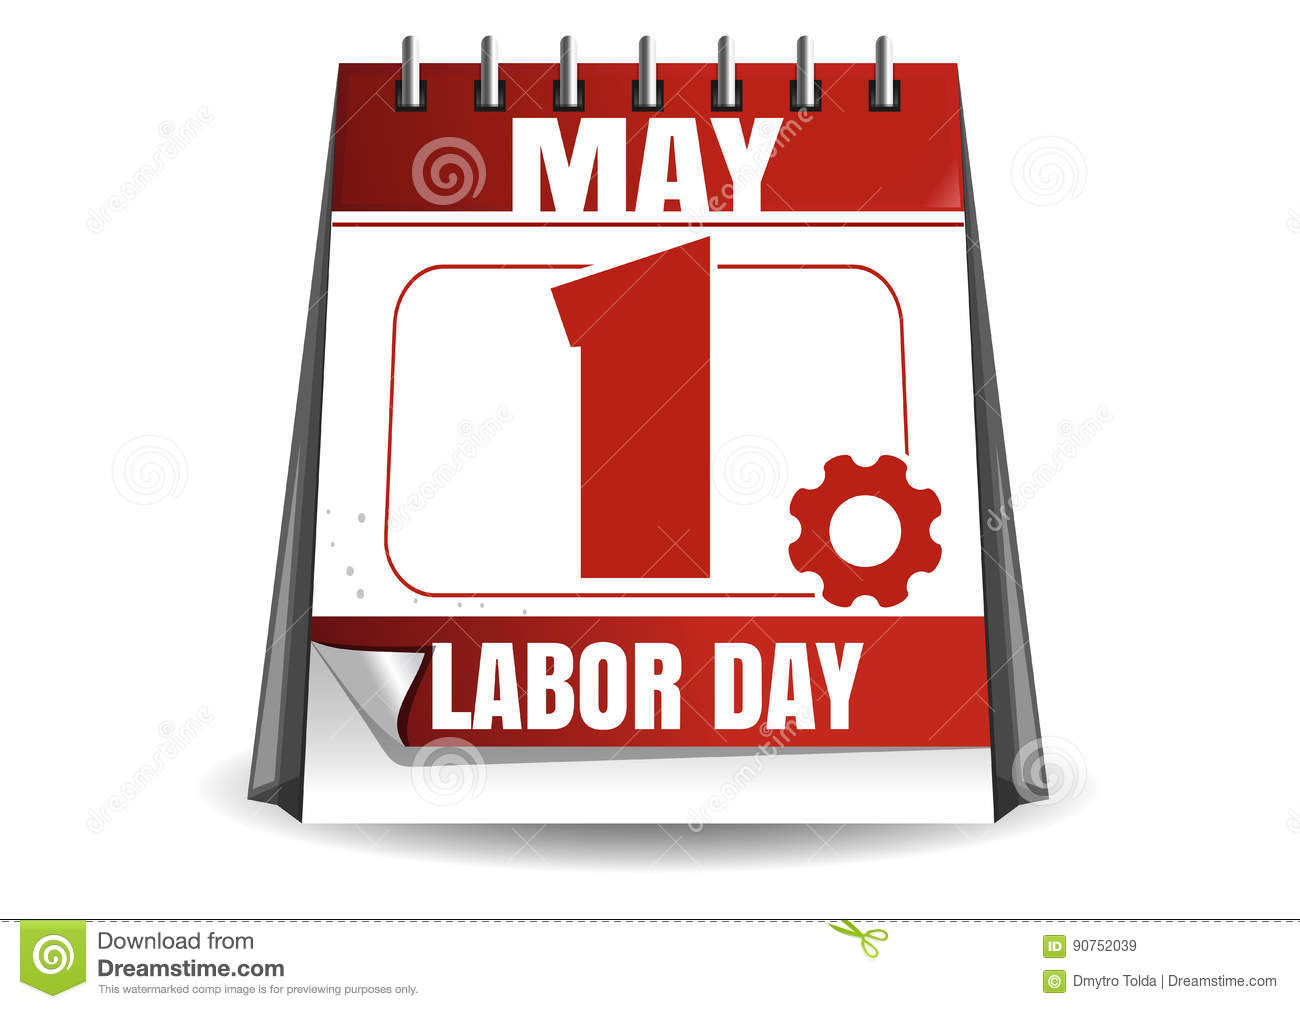 Calendar Labor Day : May labor day workers stock vector image